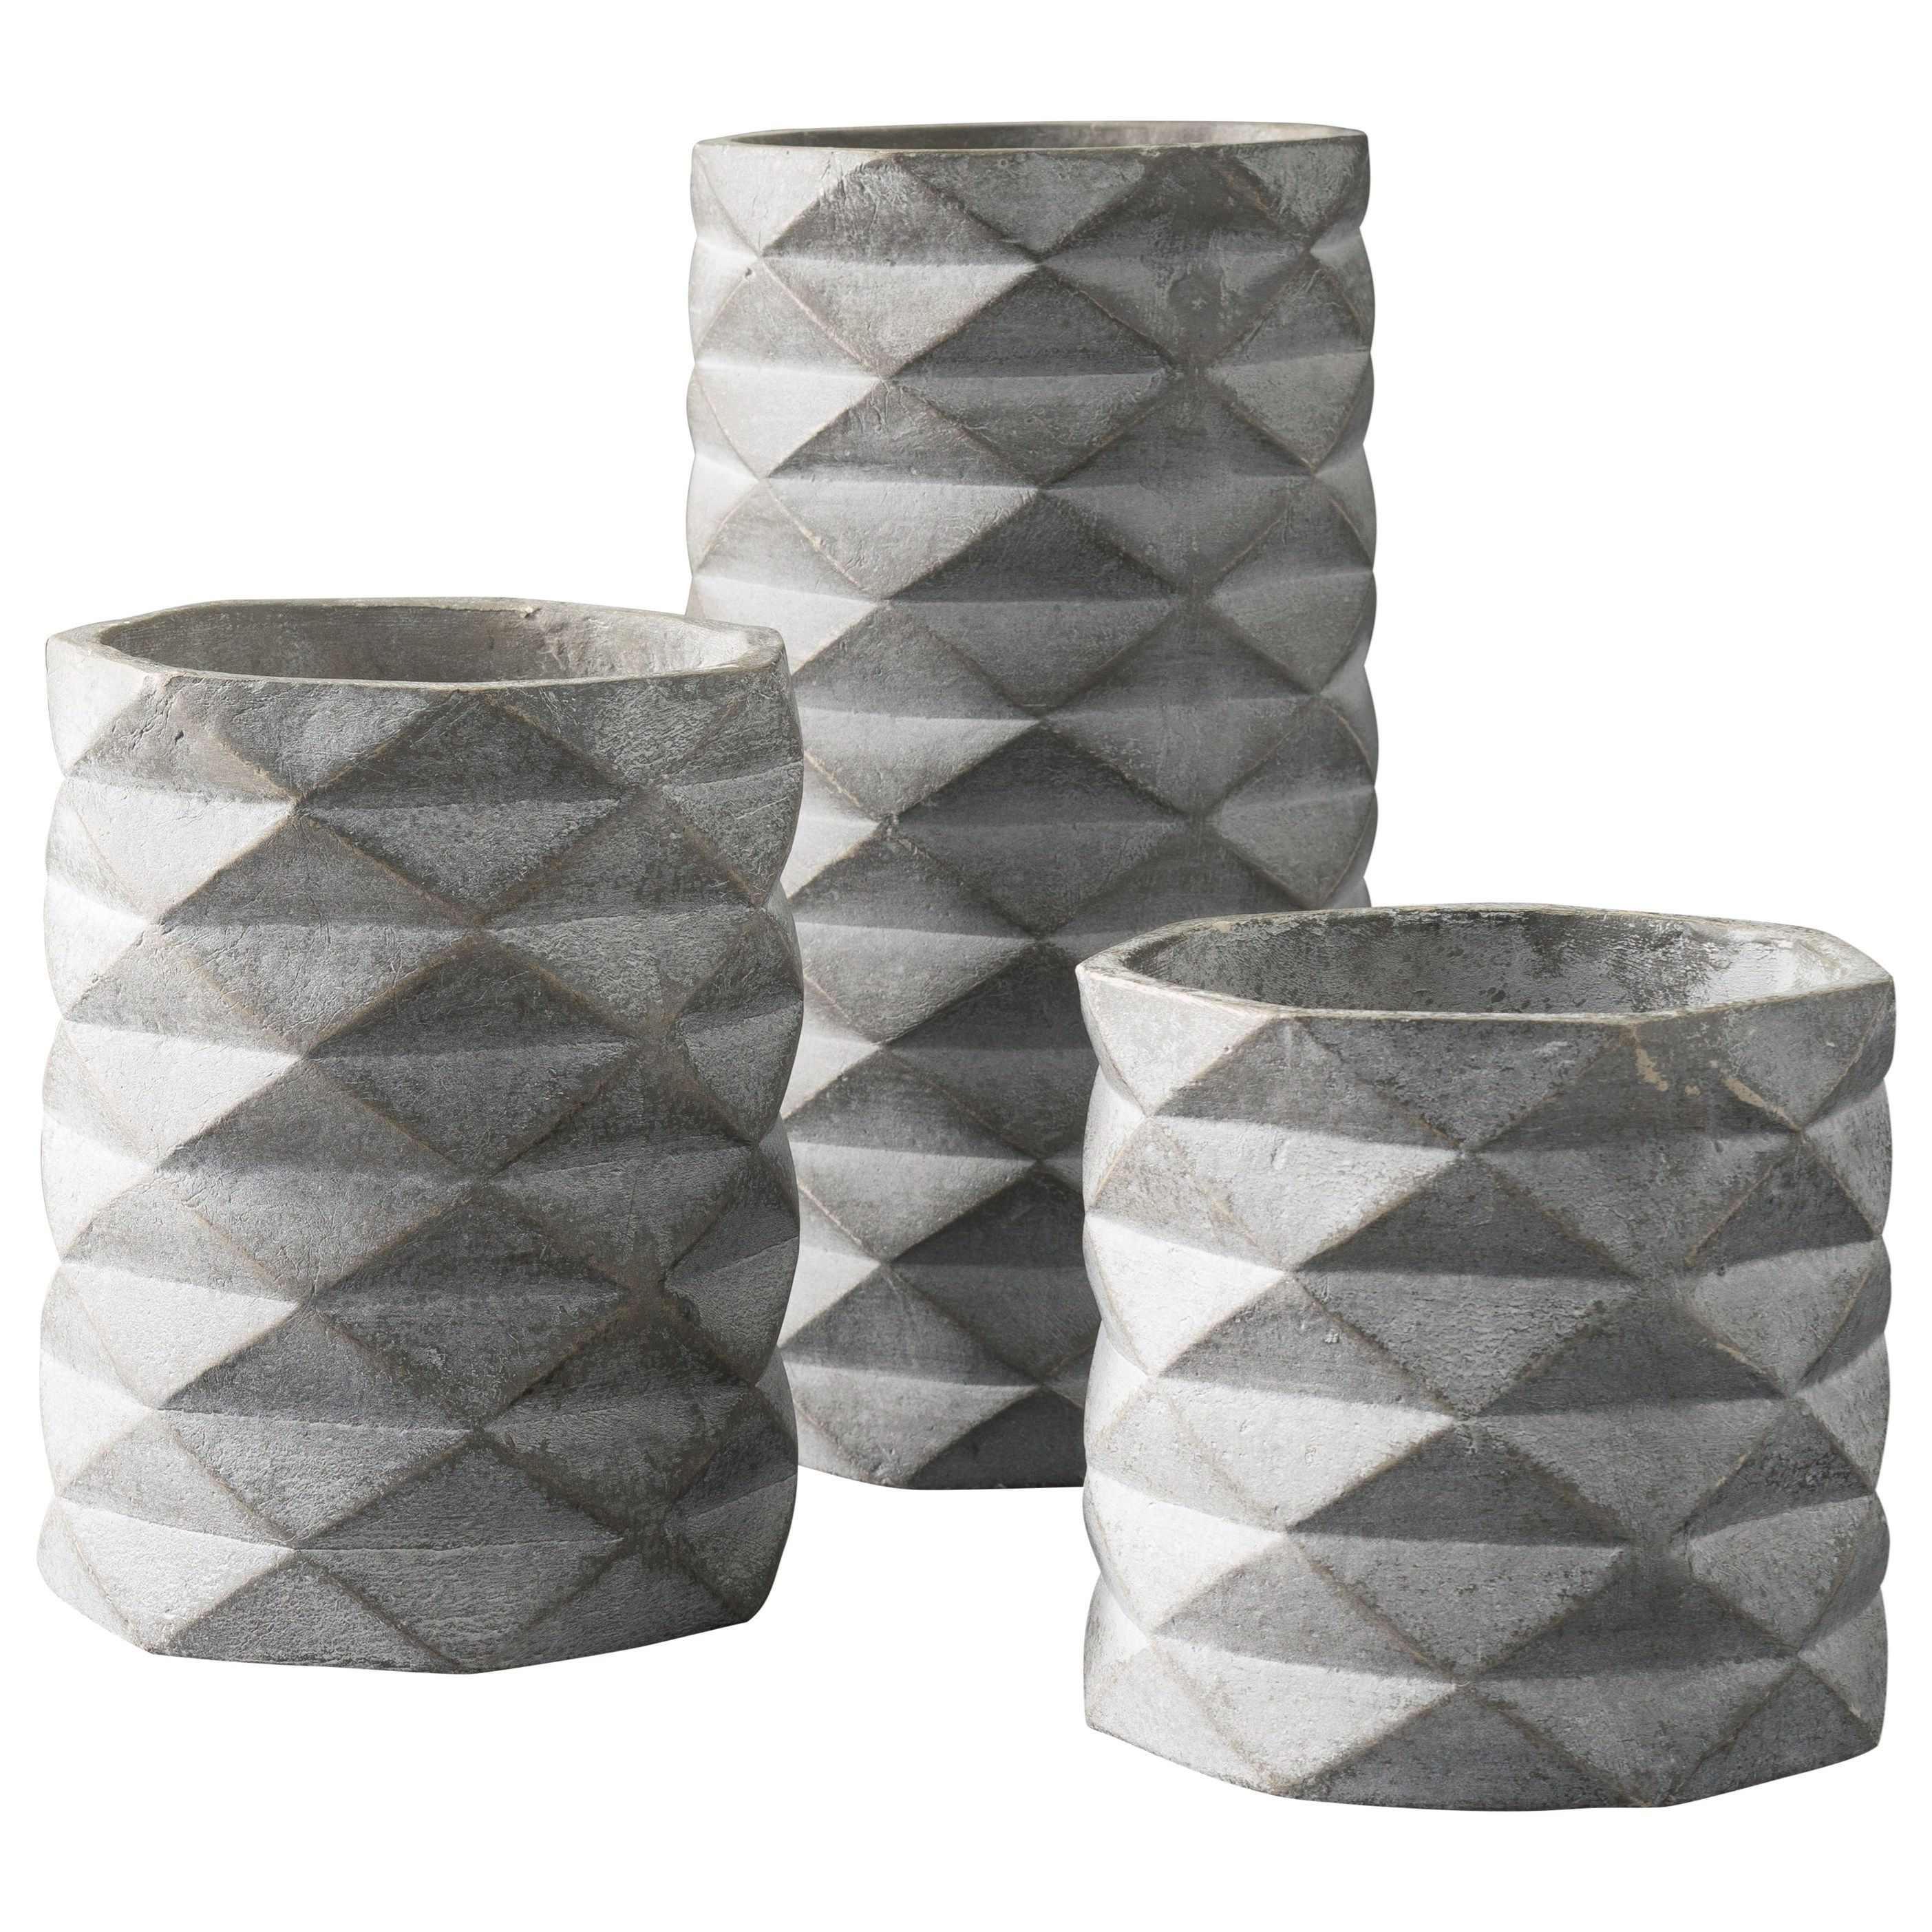 Signature Design by Ashley Accents Set of 3 Charlot Gray Vases - Item Number: A2000312